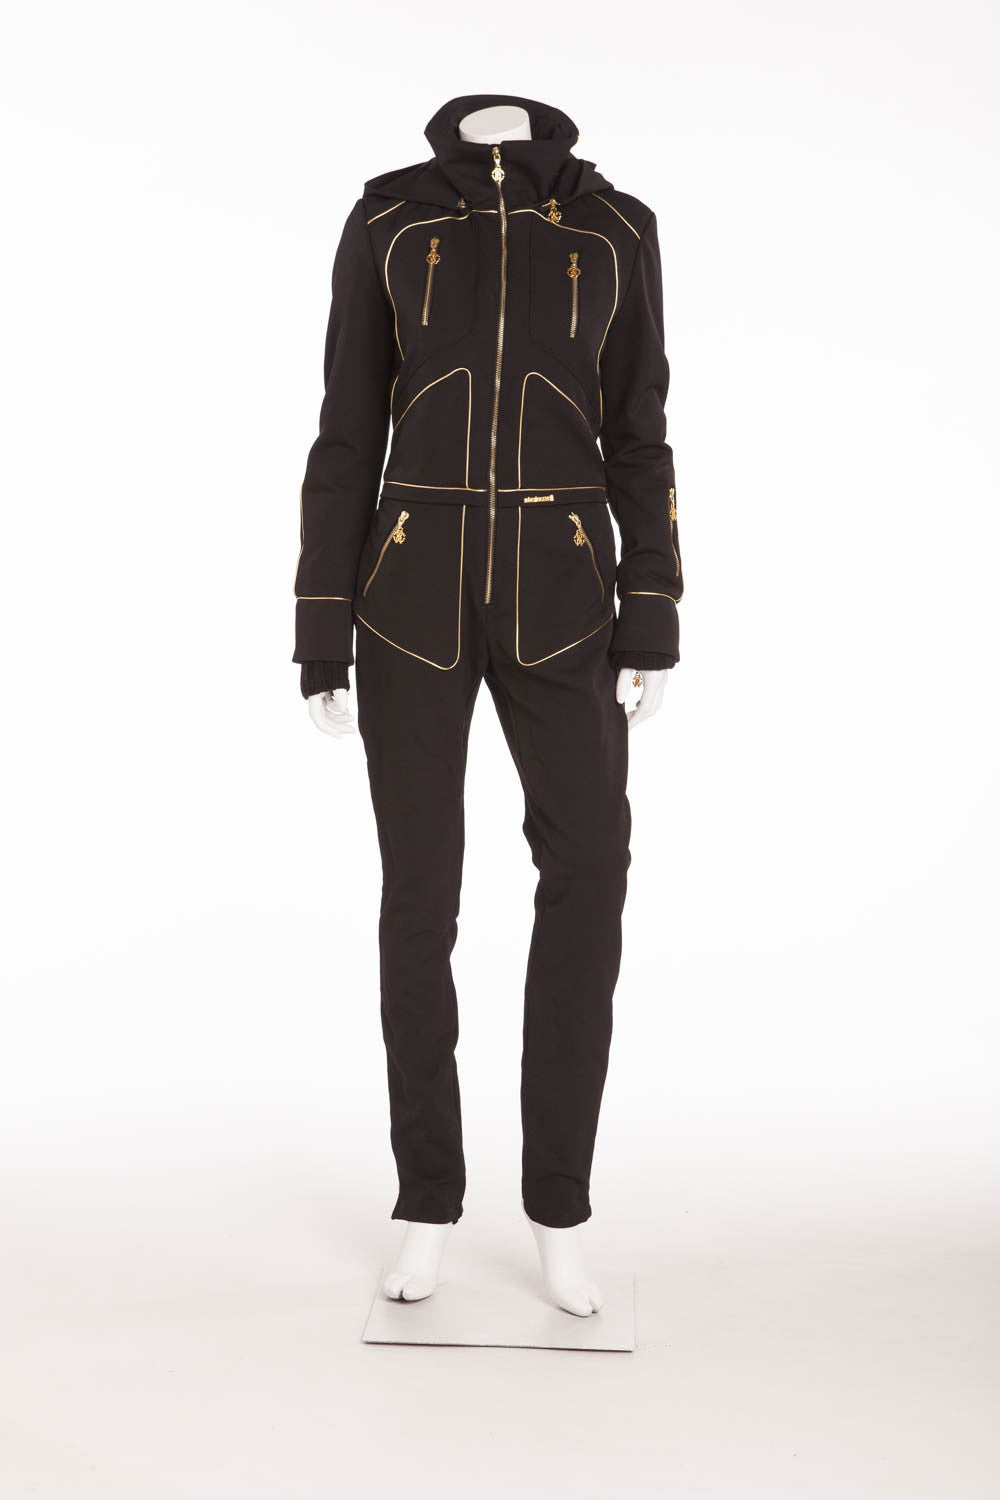 Roberto Cavalli - BN Black Ski Jumpsuit with Gold Embellishments - IT 42